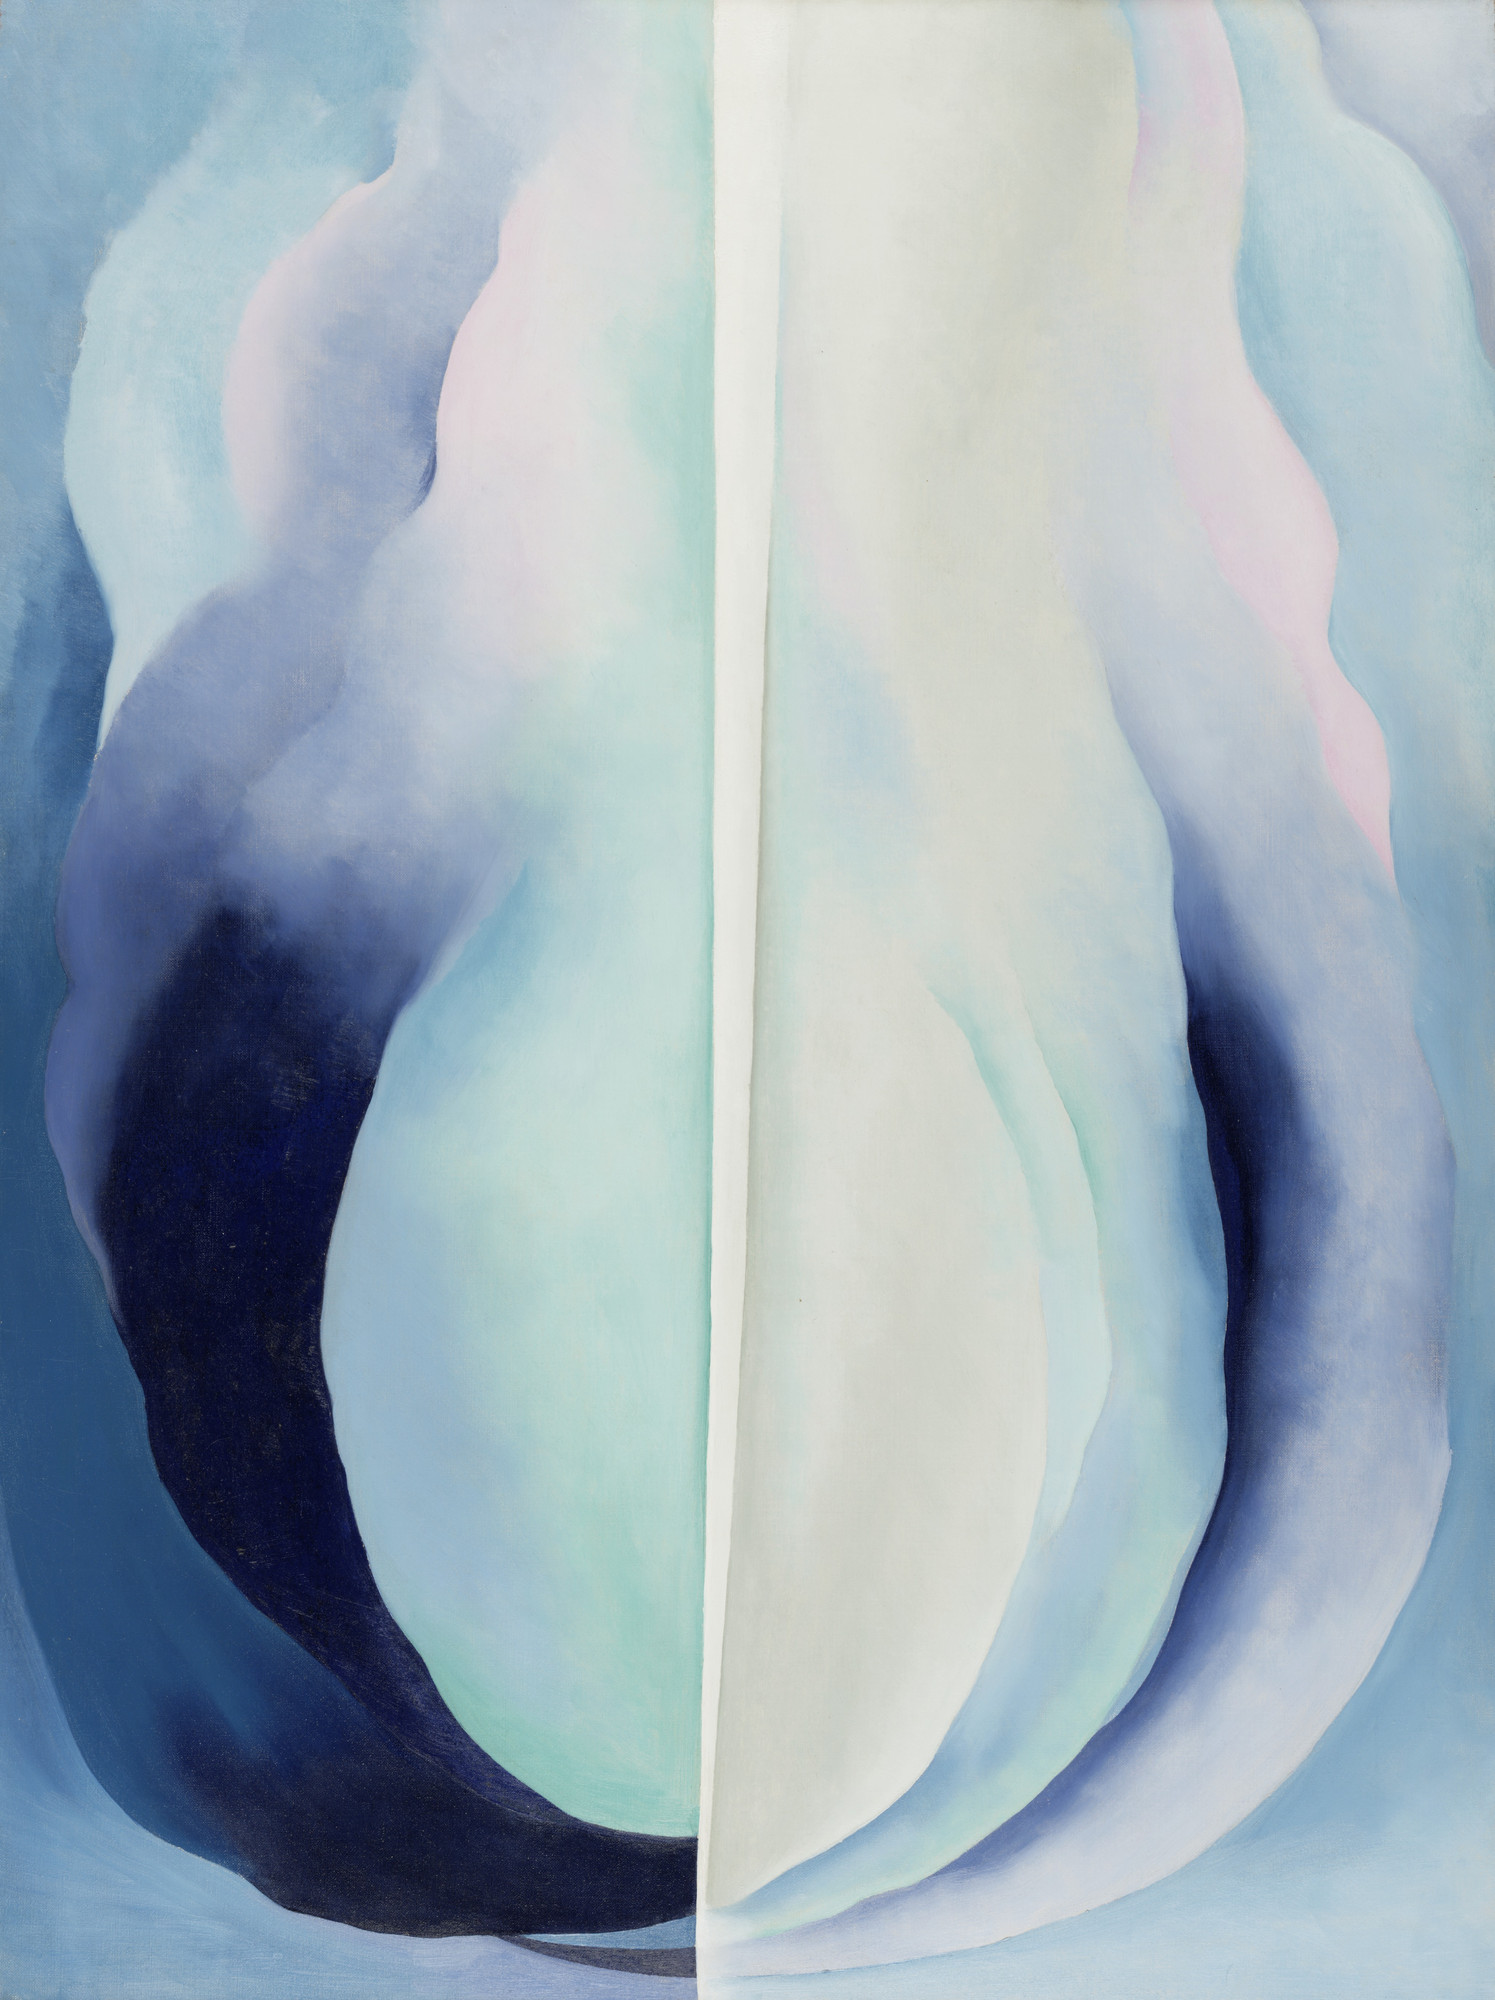 Georgia O'Keeffe. Abstraction Blue. 1927